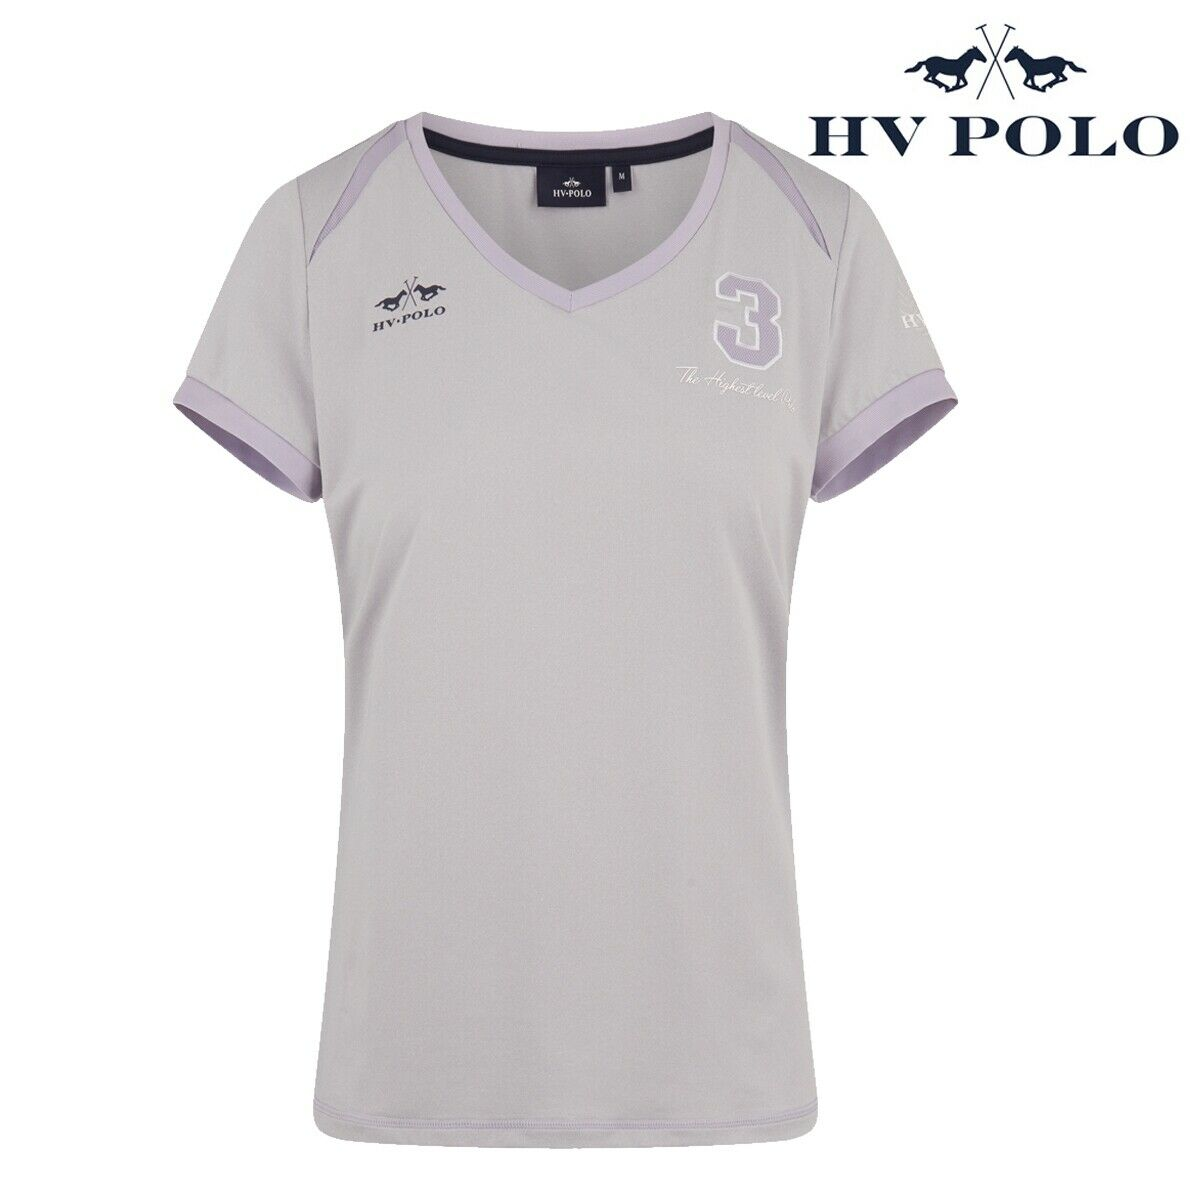 HV Polo Favouritas Tech Short Sleeve T-Shirt - Free  UK Shipping  cheaper prices